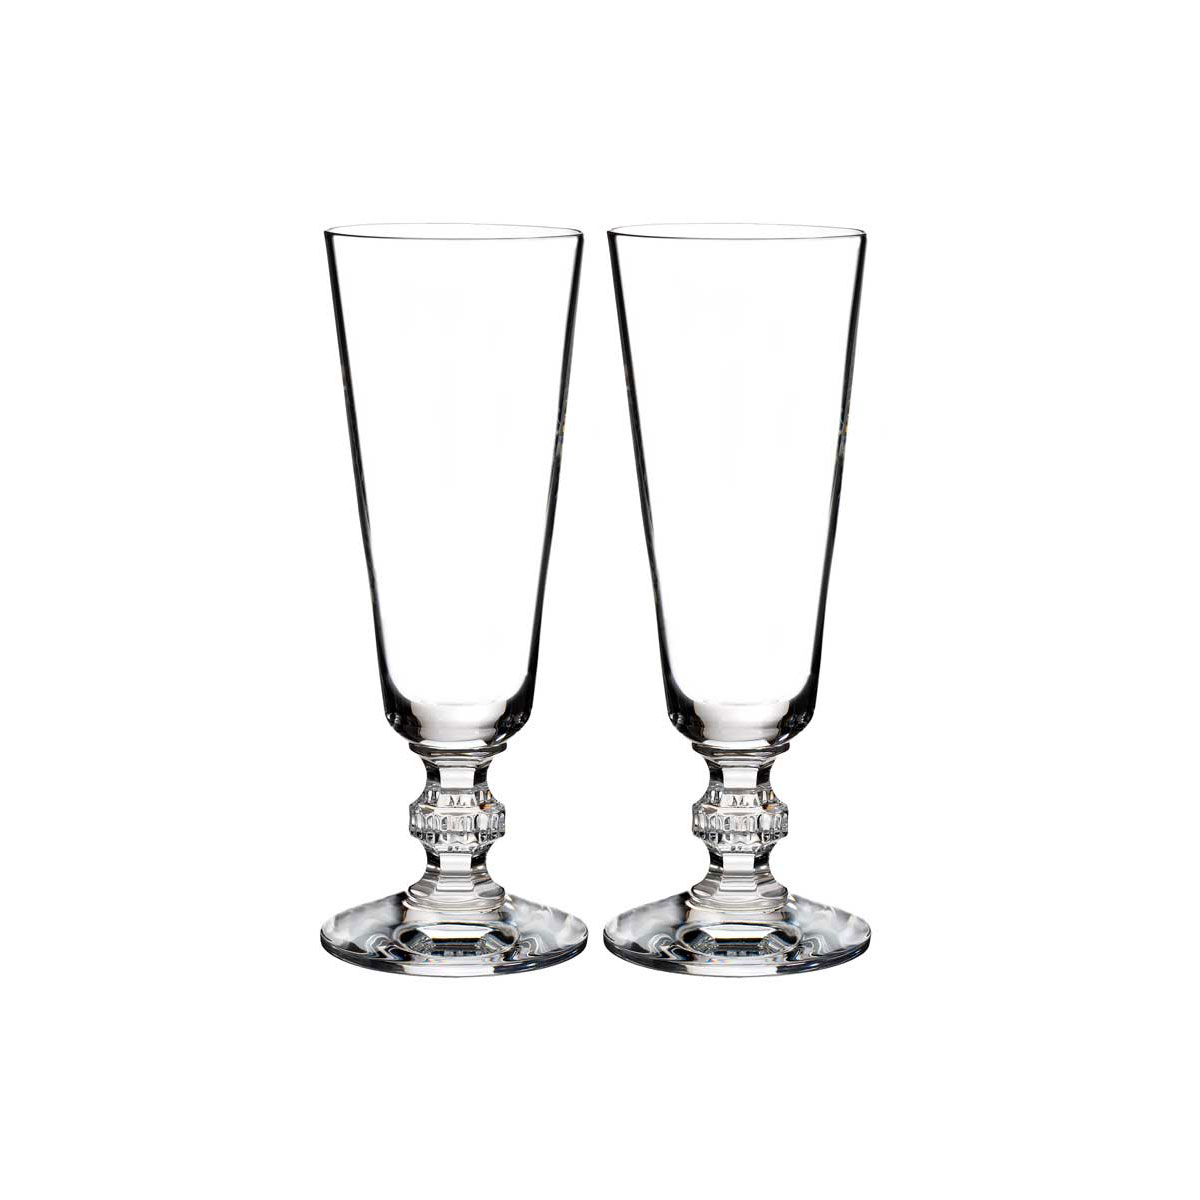 Waterford Crystal, Town and Country Ashton Lane Crystal Flutes, Pair